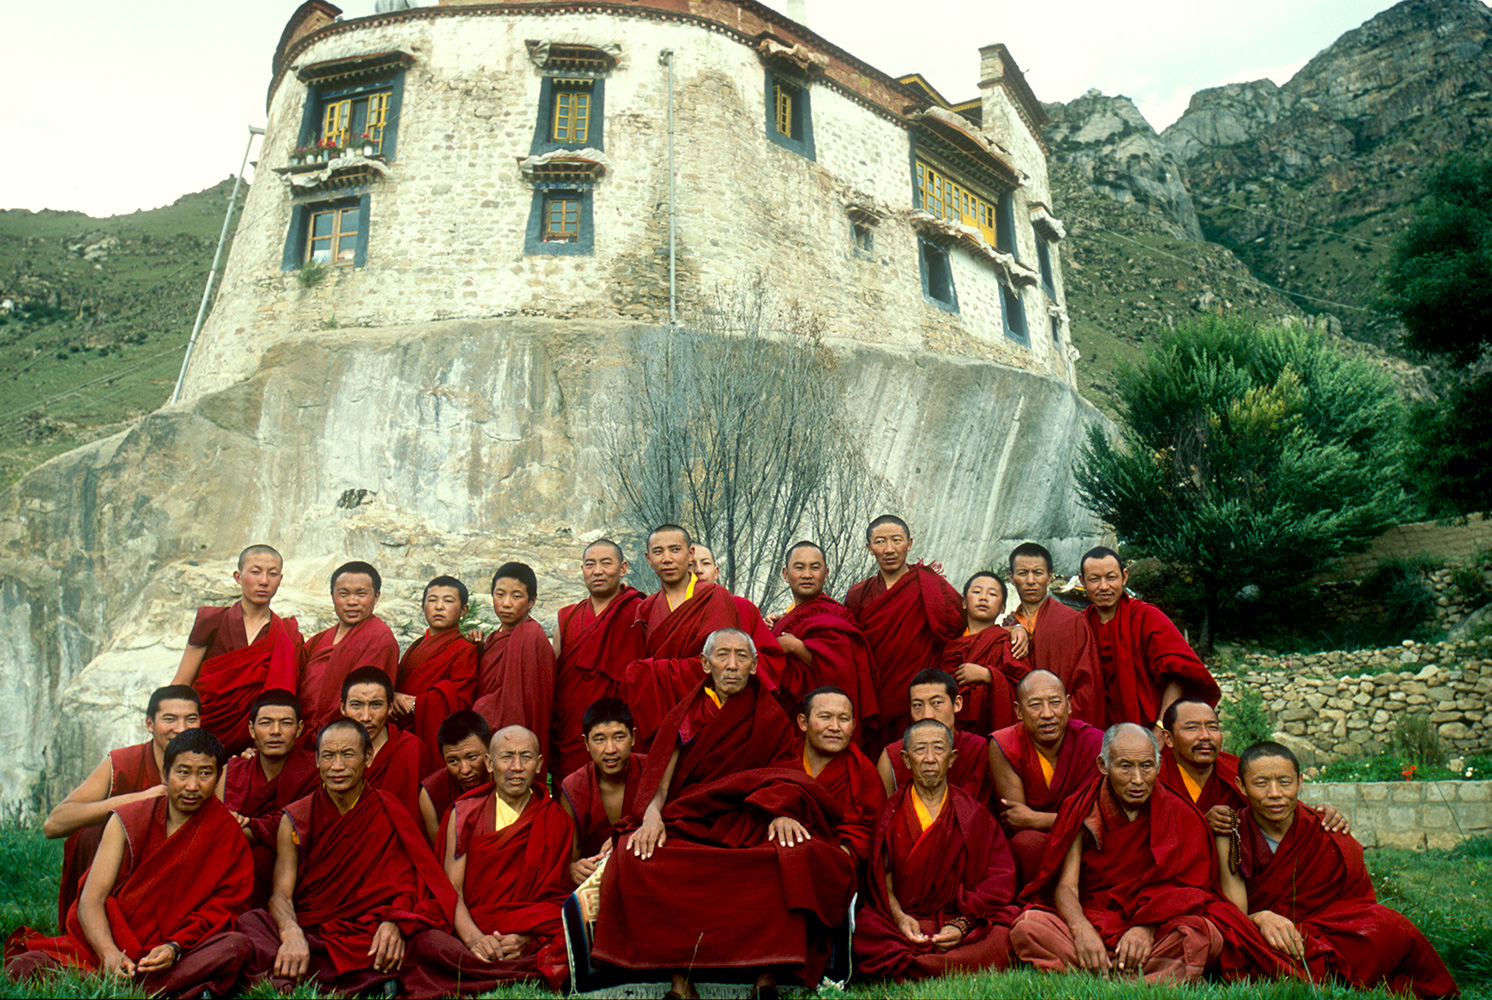 The Abbott poses for a photograph with a group of monks who have just completed a year's retreat at this beautiful monastery in a high valley near Lhasa.Nikon F5, 17mm, Fuji Velvia